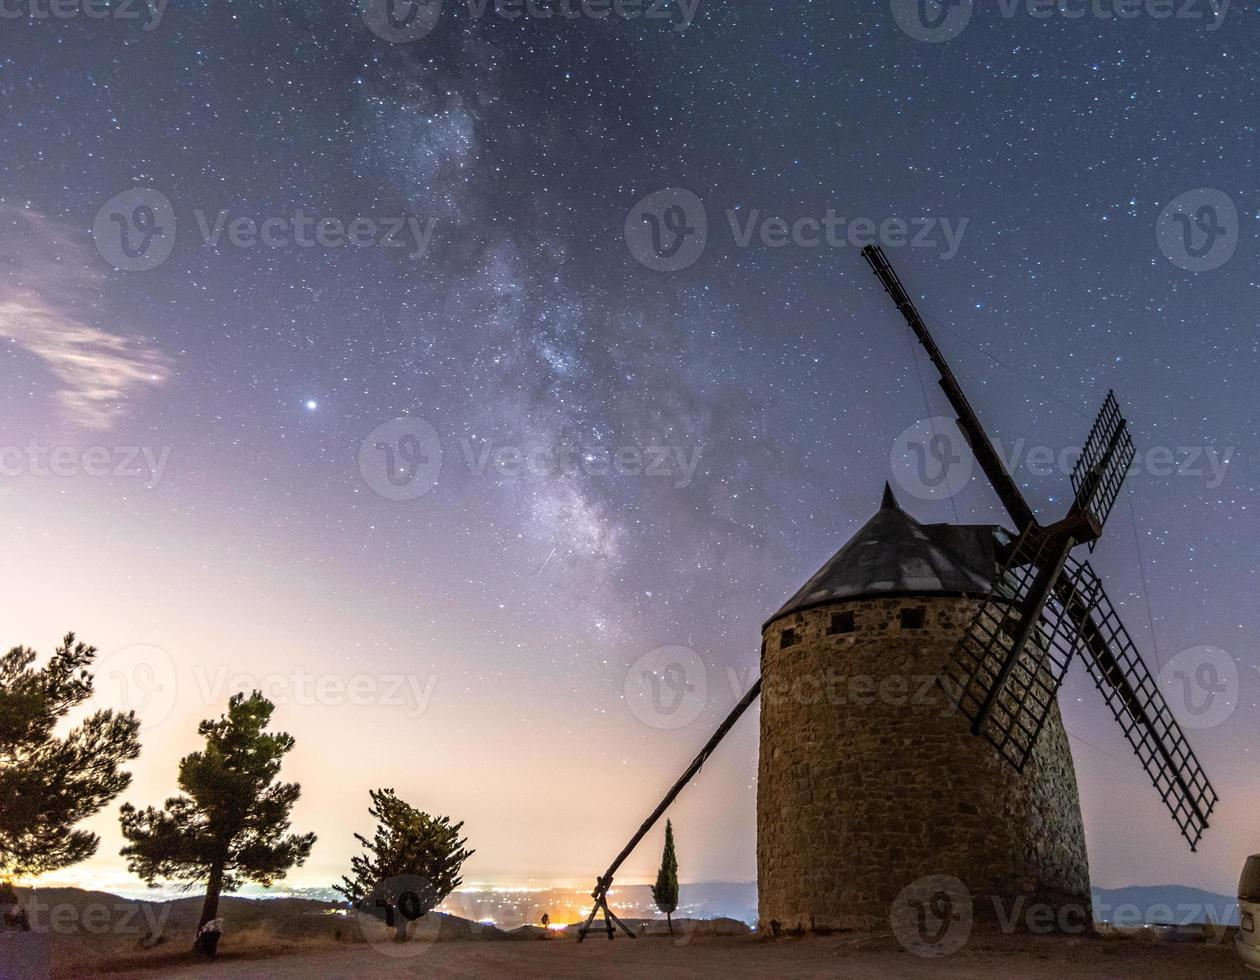 Windmill with the Milky Way photo